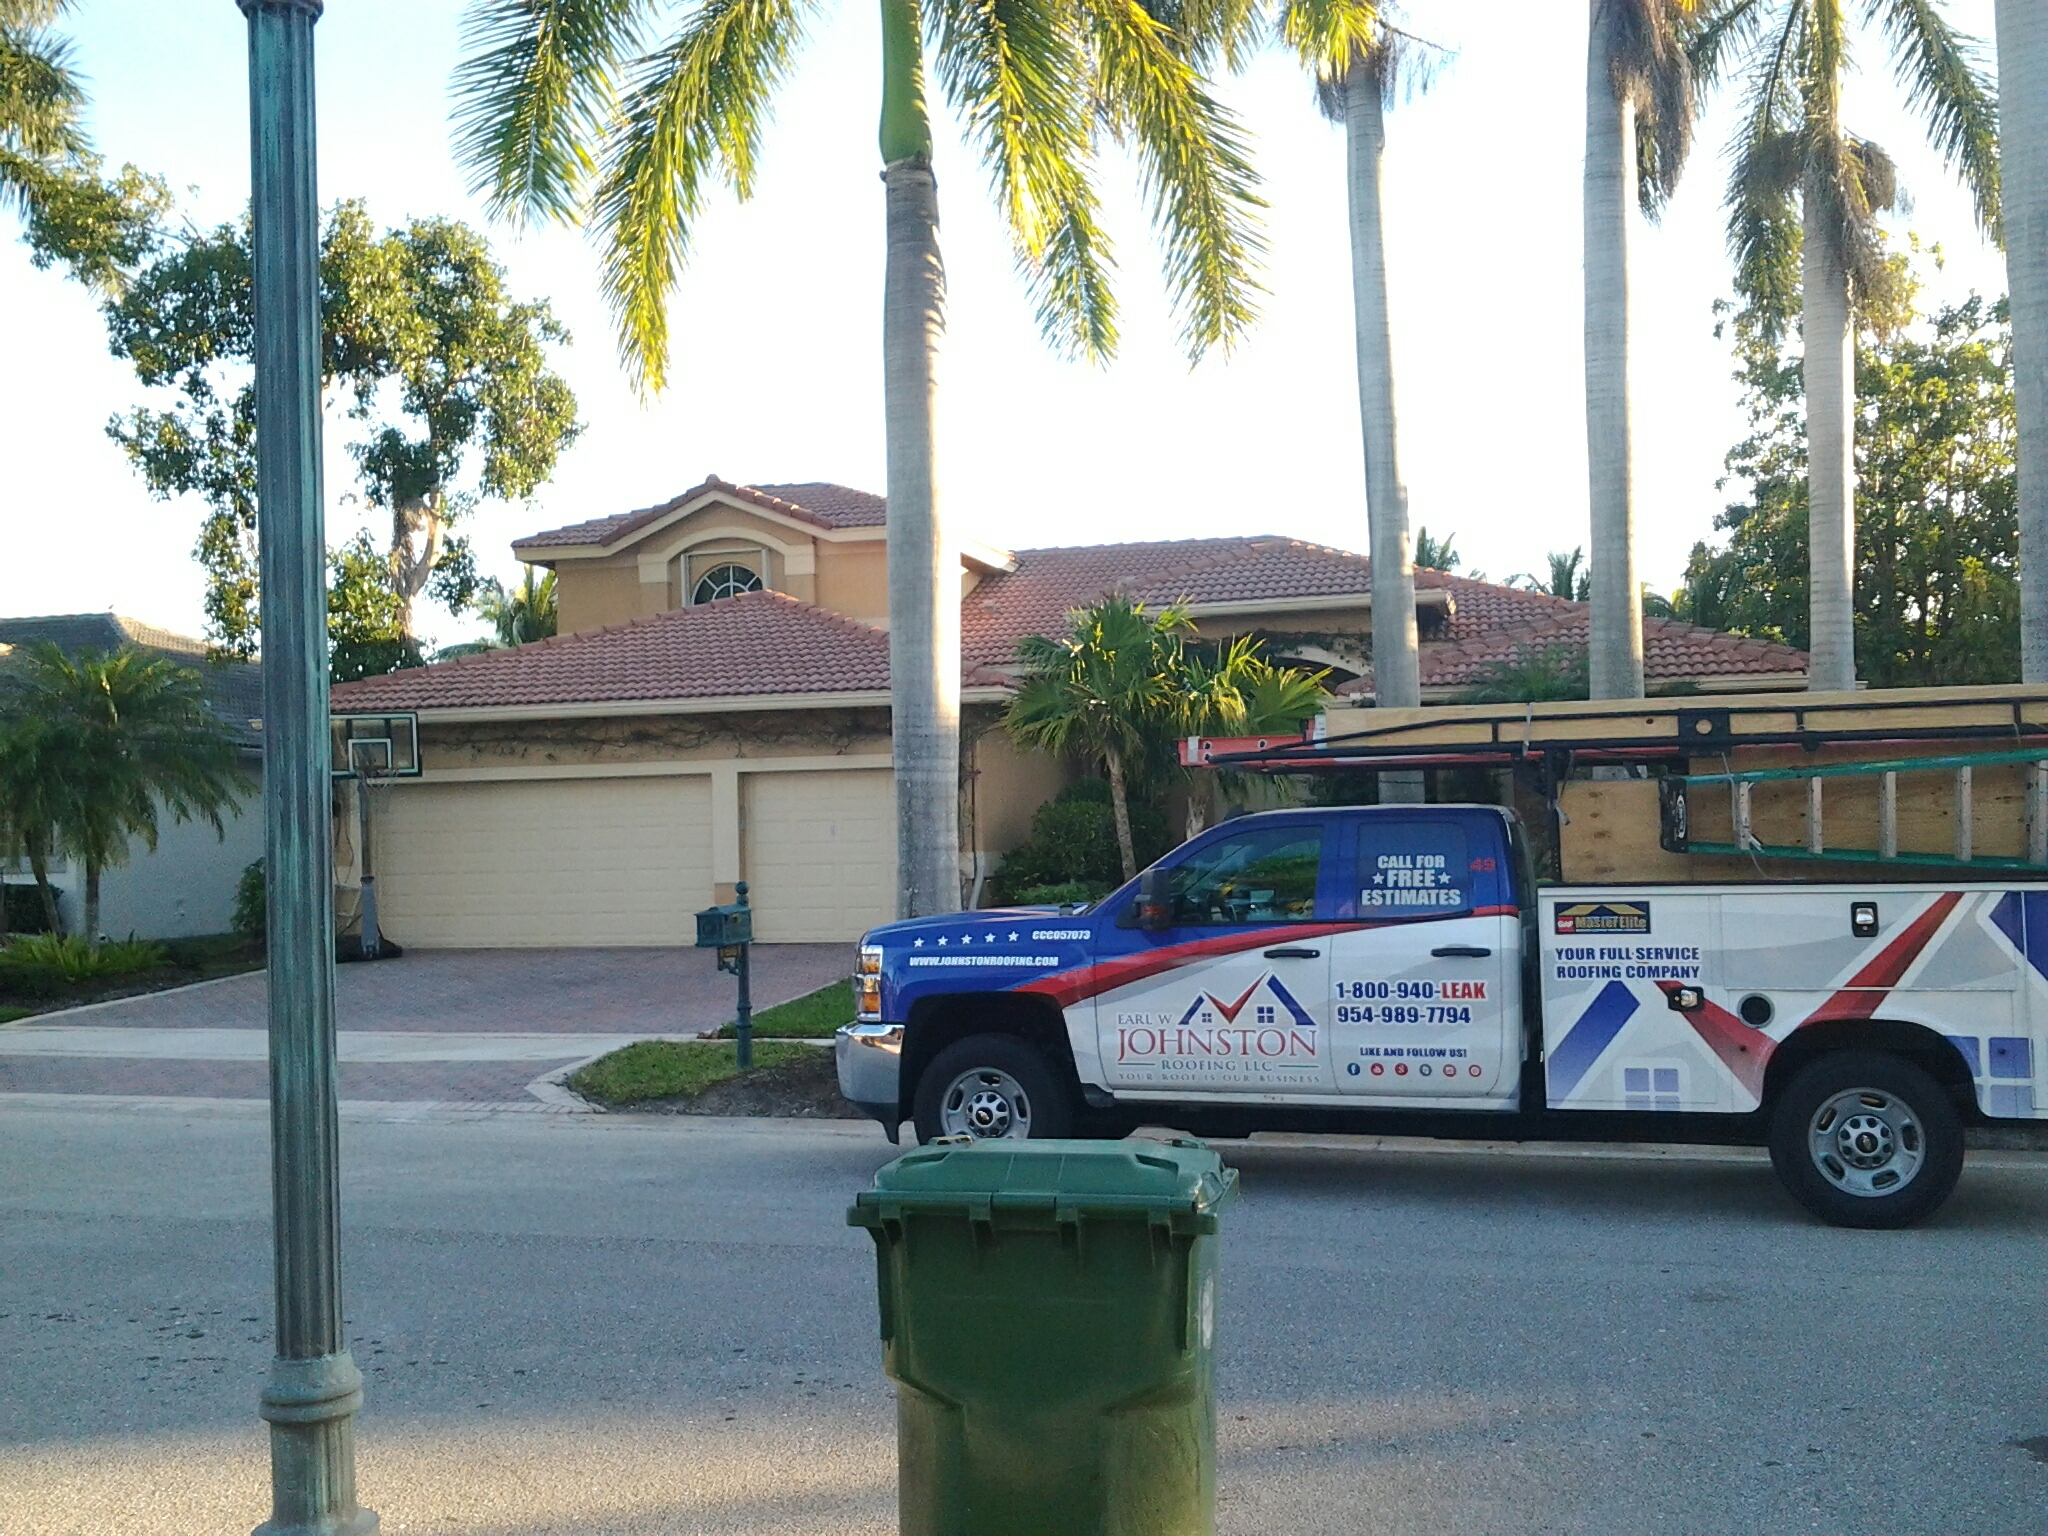 Weston, FL - Tile roof repair in the city of weston fl this repair is being done by Earl w Johnston roofing company Jos? end Duane are you repair technicians